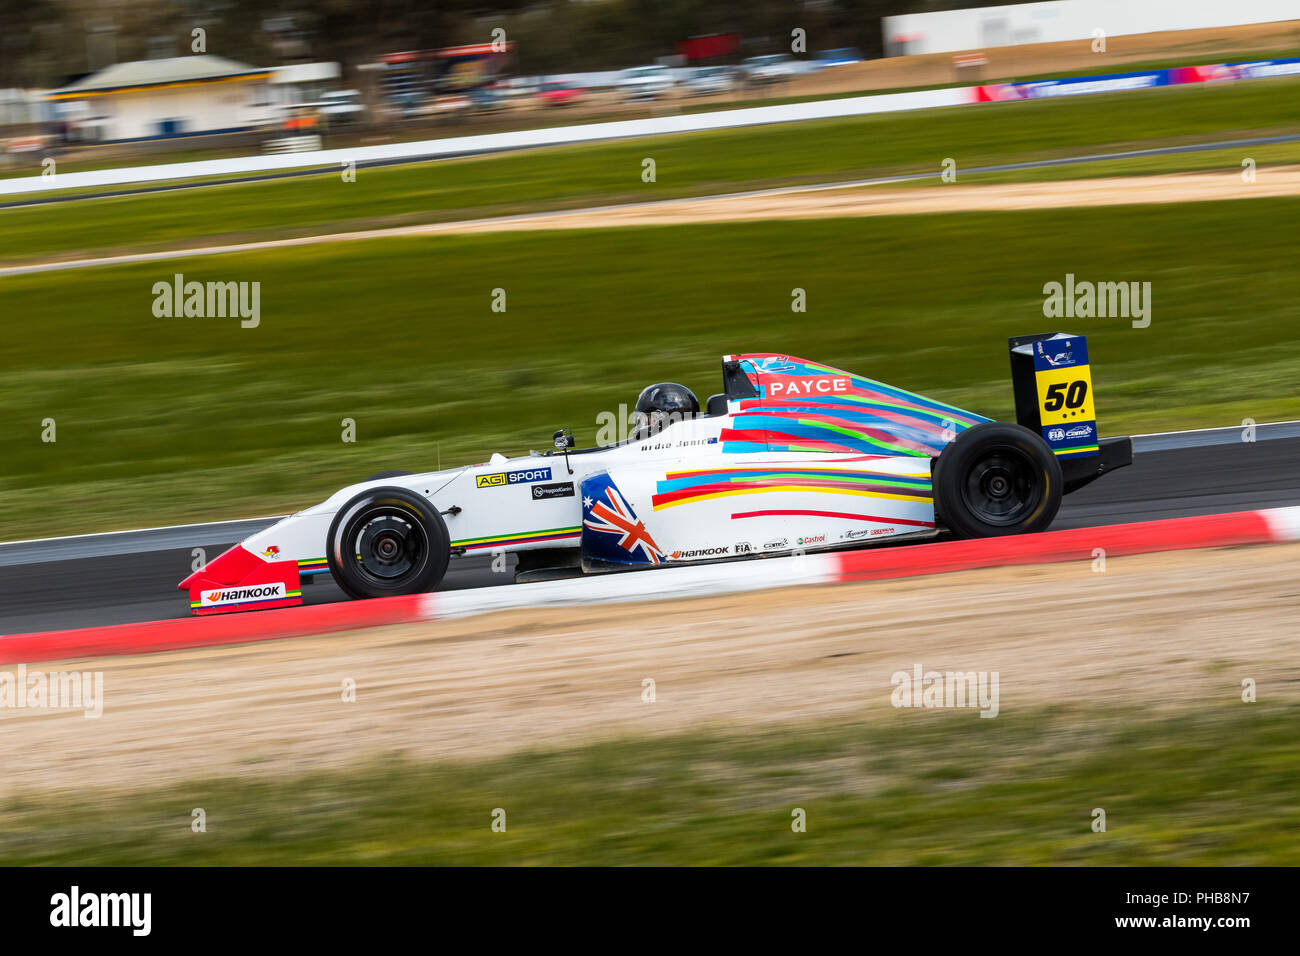 MELBOURNE, AUSTRALIA – SEPTEMBER 1: Ardie Jonic driving the Jonic Motors Formula 4 during the 2018 Shannon's Nationals, Round 5 - Winton, Australia on September 01 2018. Credit: Dave Hewison Sports/Alamy Live News - Stock Image